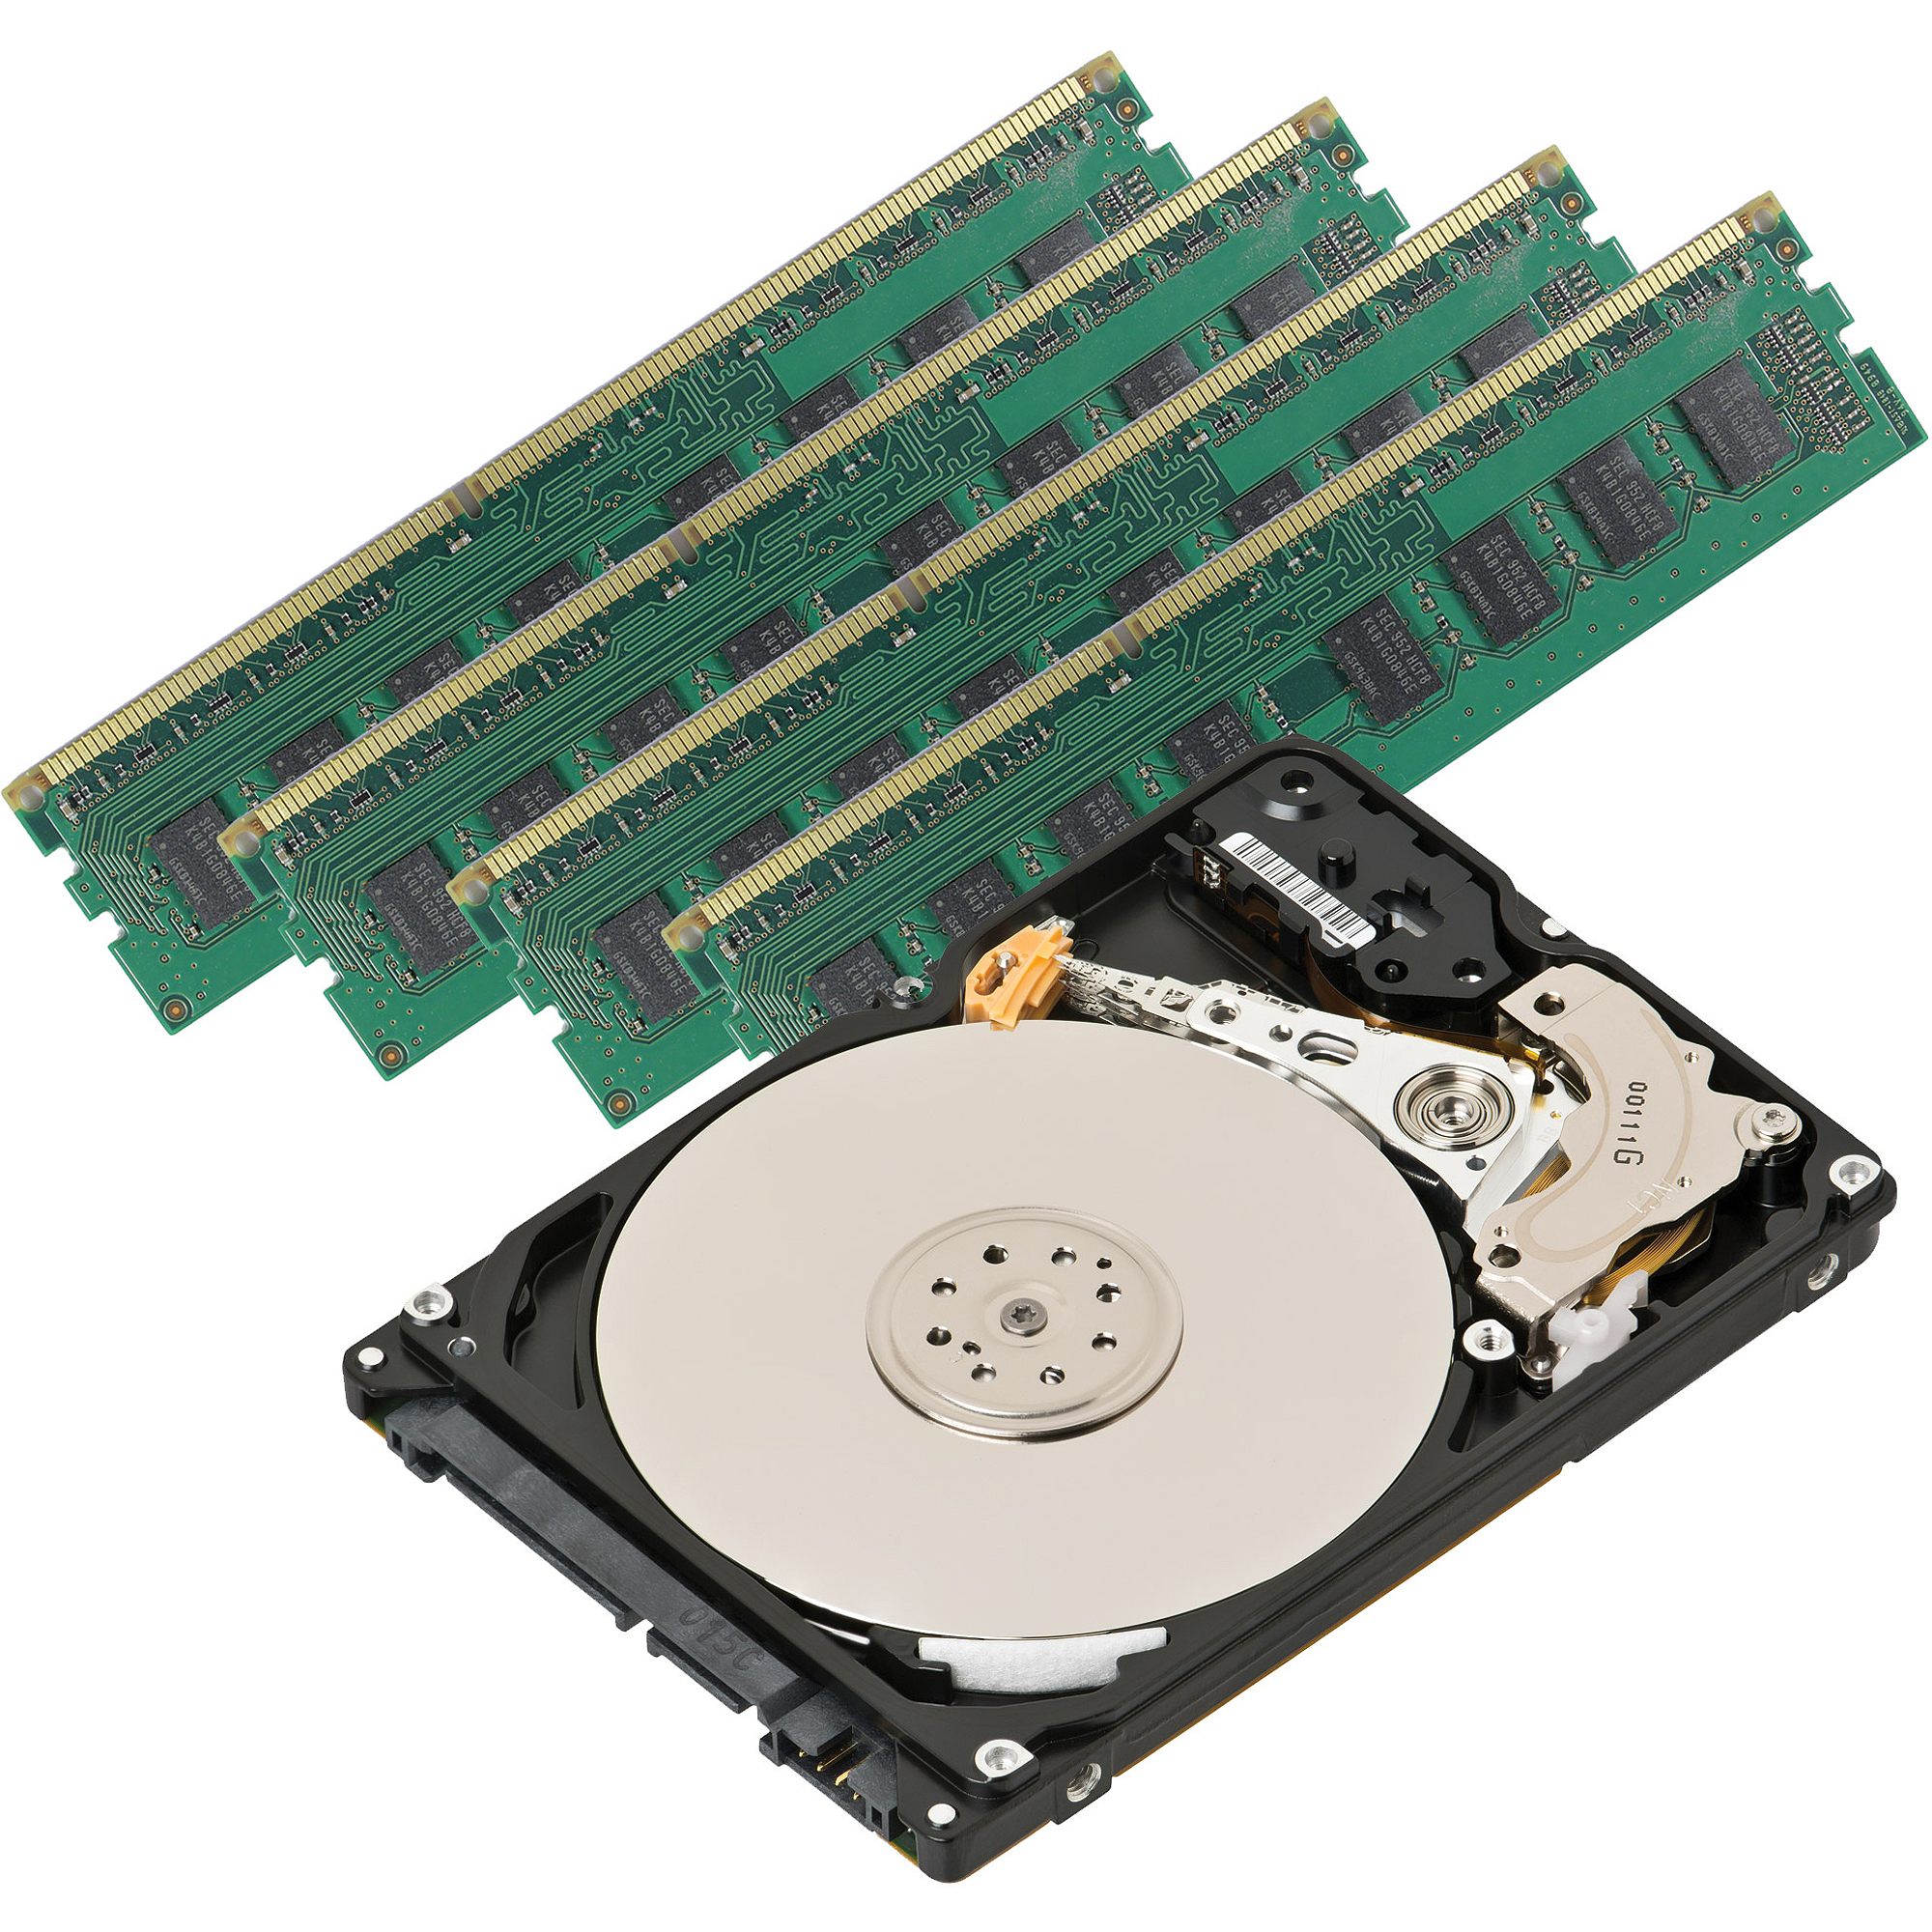 16GB DDR3 Memory + 2TB Hard Drive